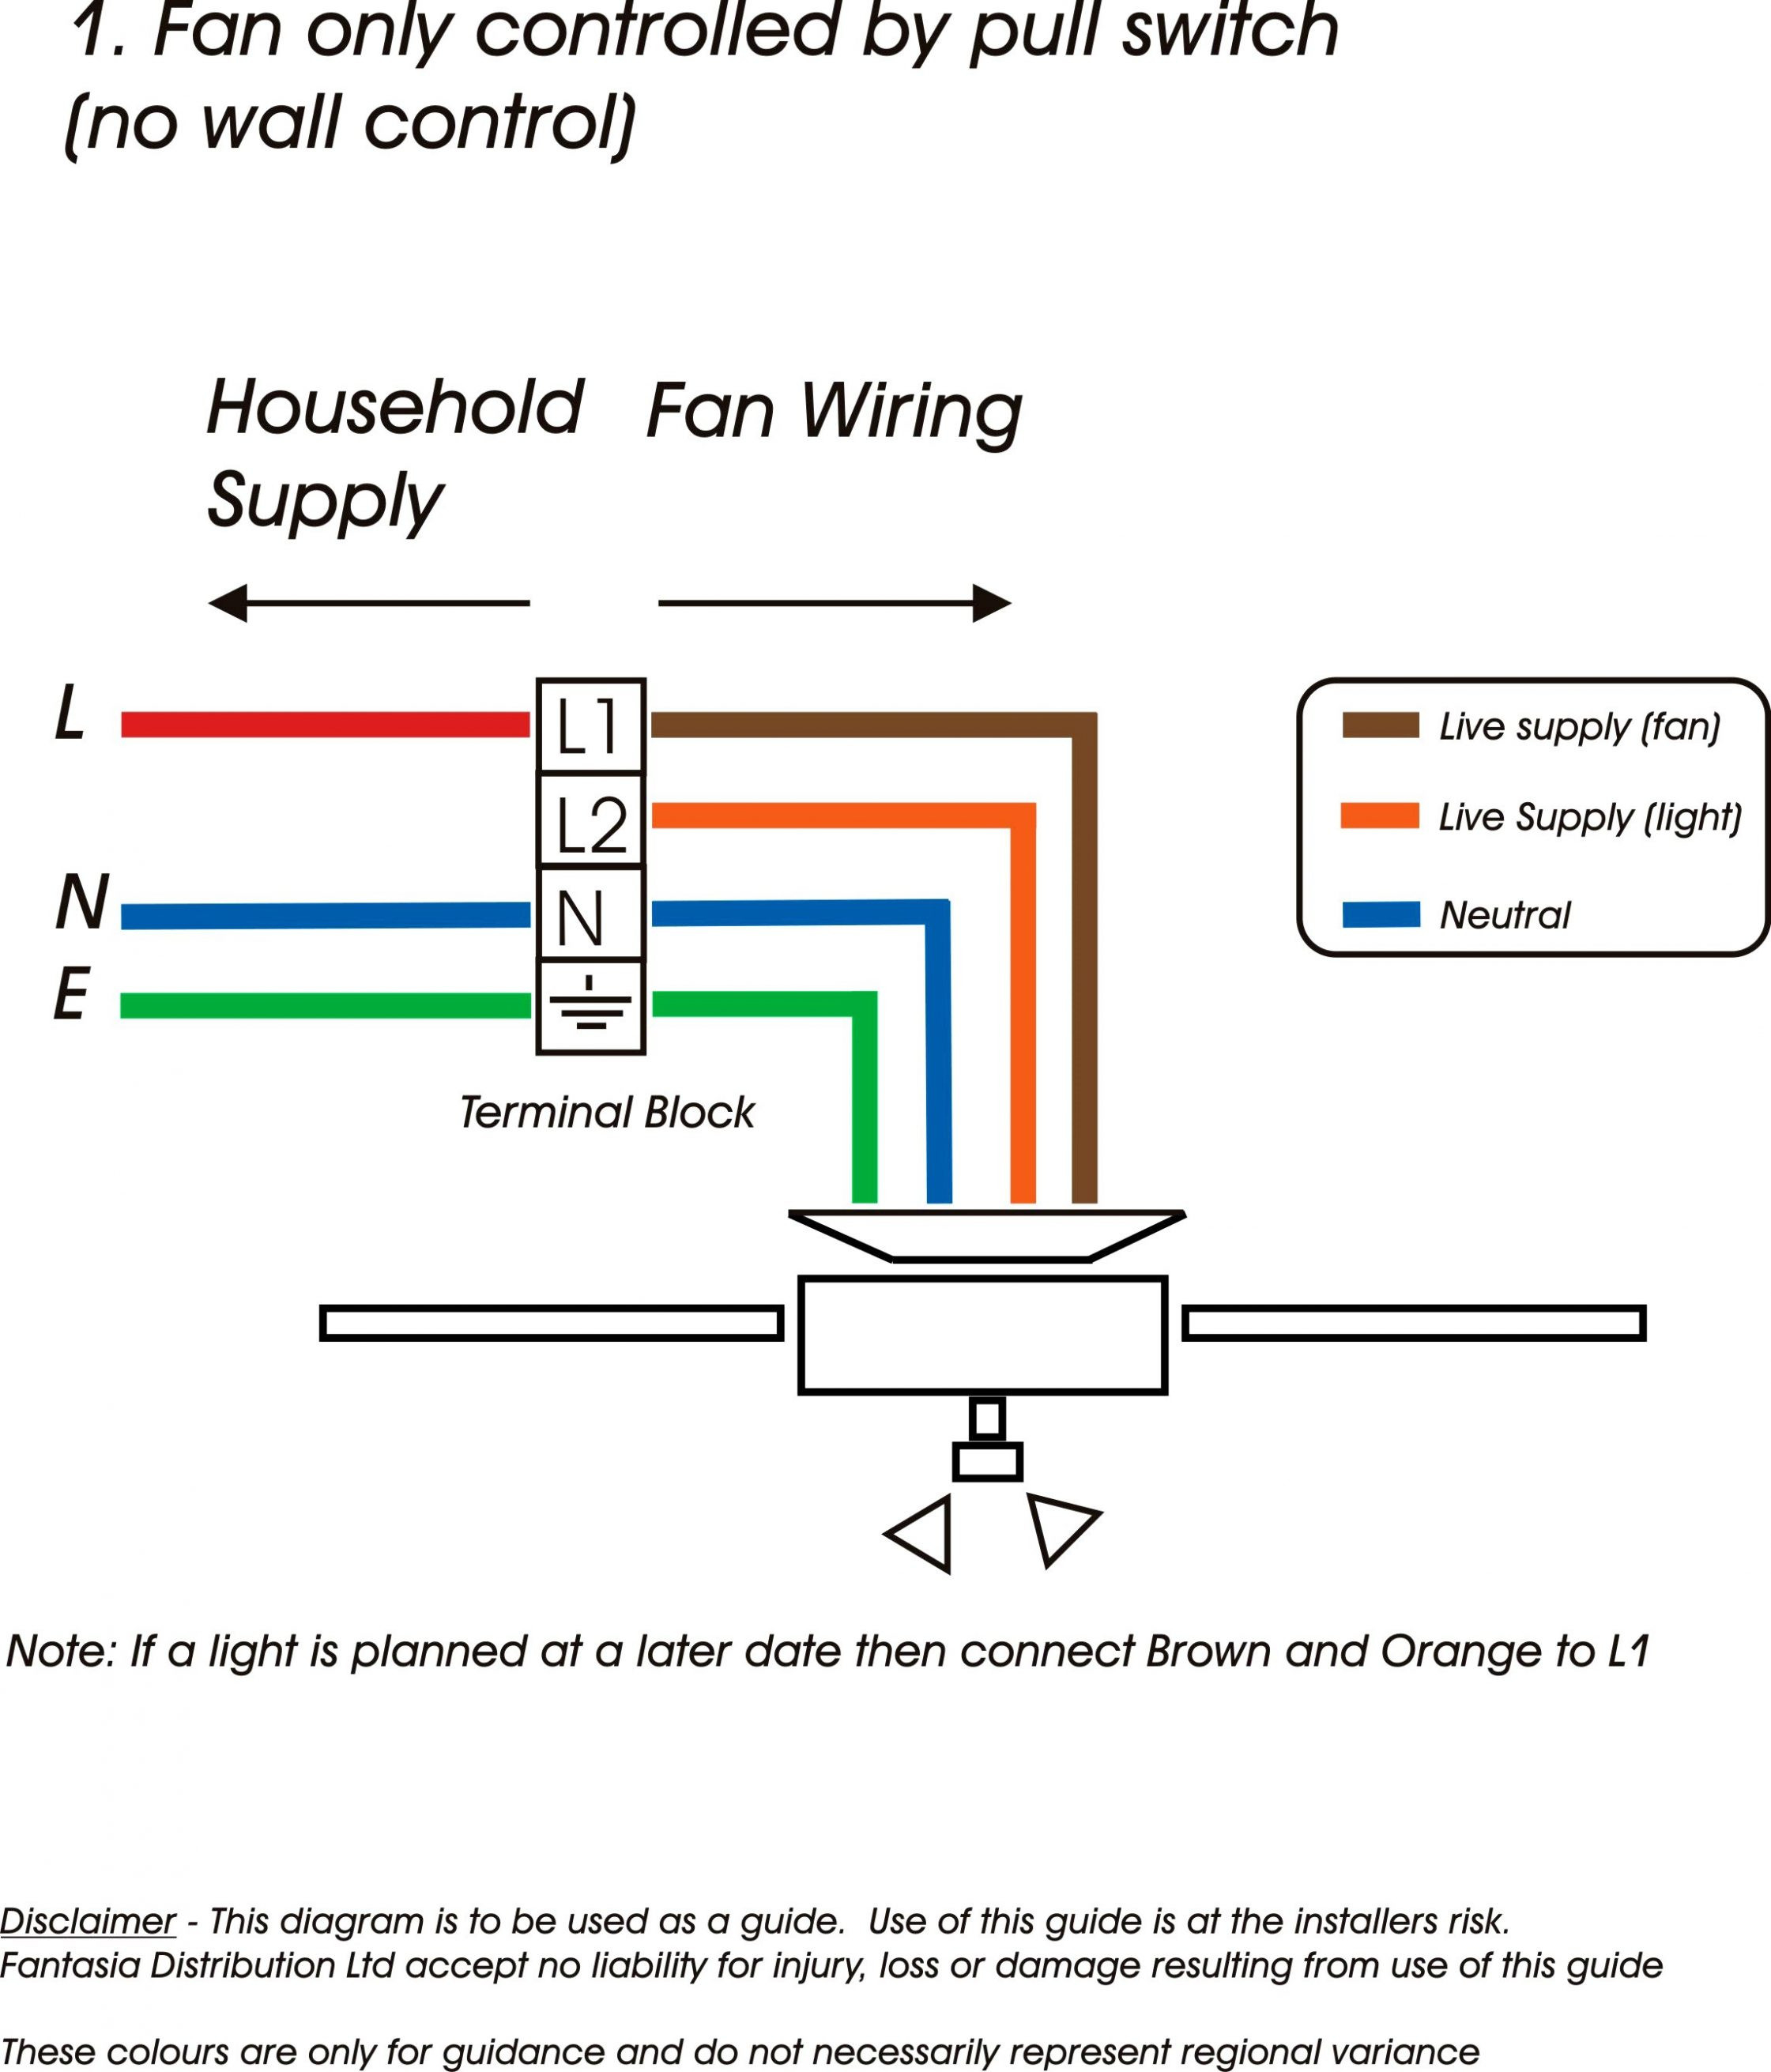 hunter fan switch wiring diagram Collection-Hunter Ceiling Fan Switch Wiring Diagram 1 2241 X 2622 0 3-c